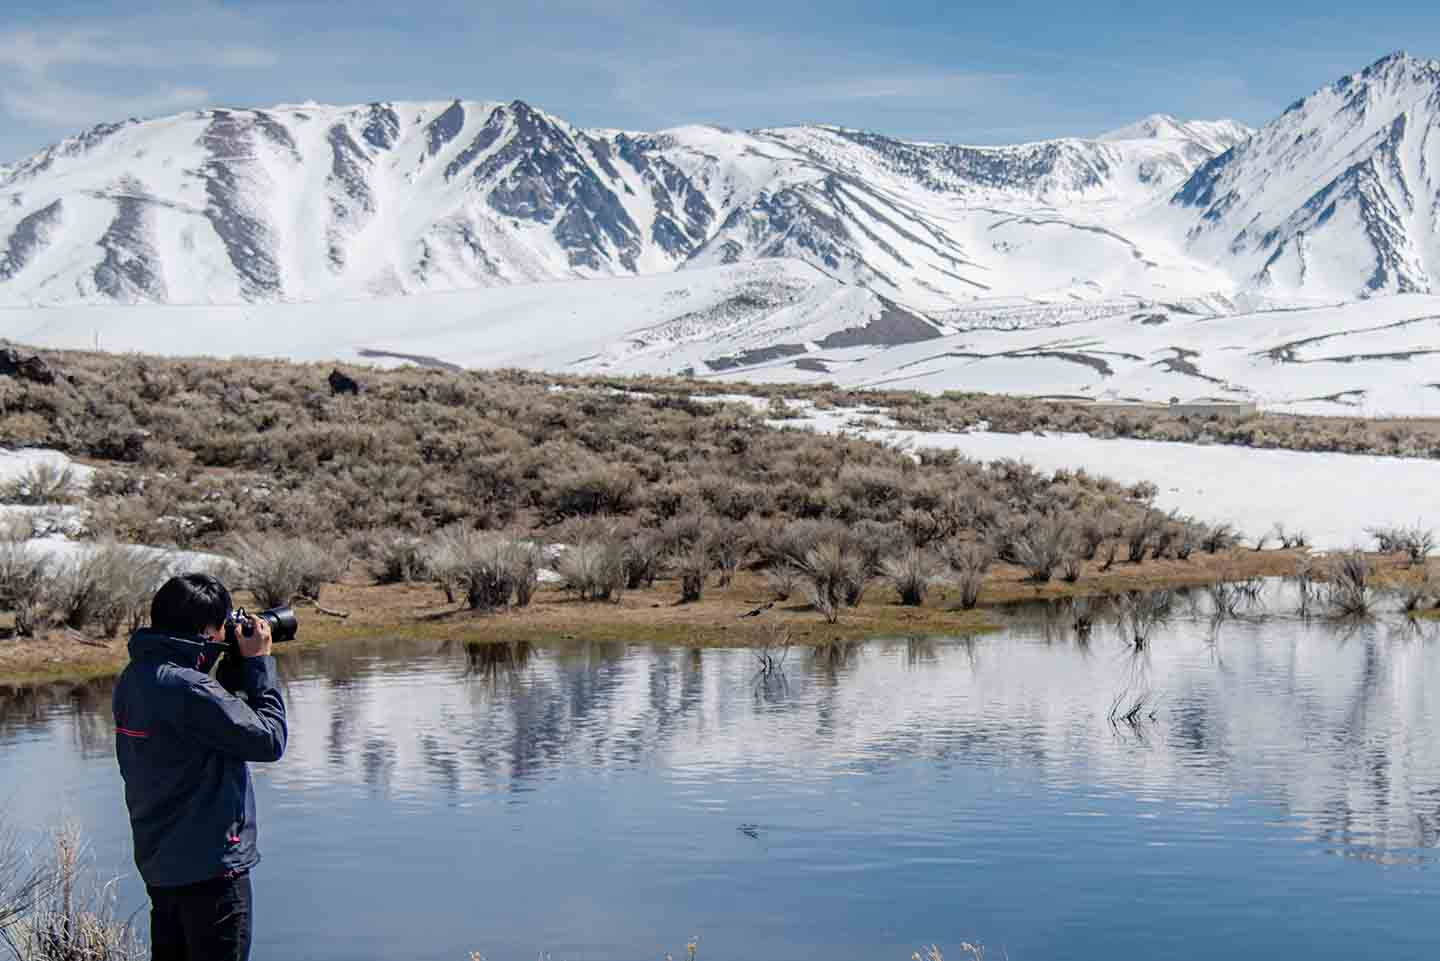 Photographer taking a photo in the winter at Mammoth